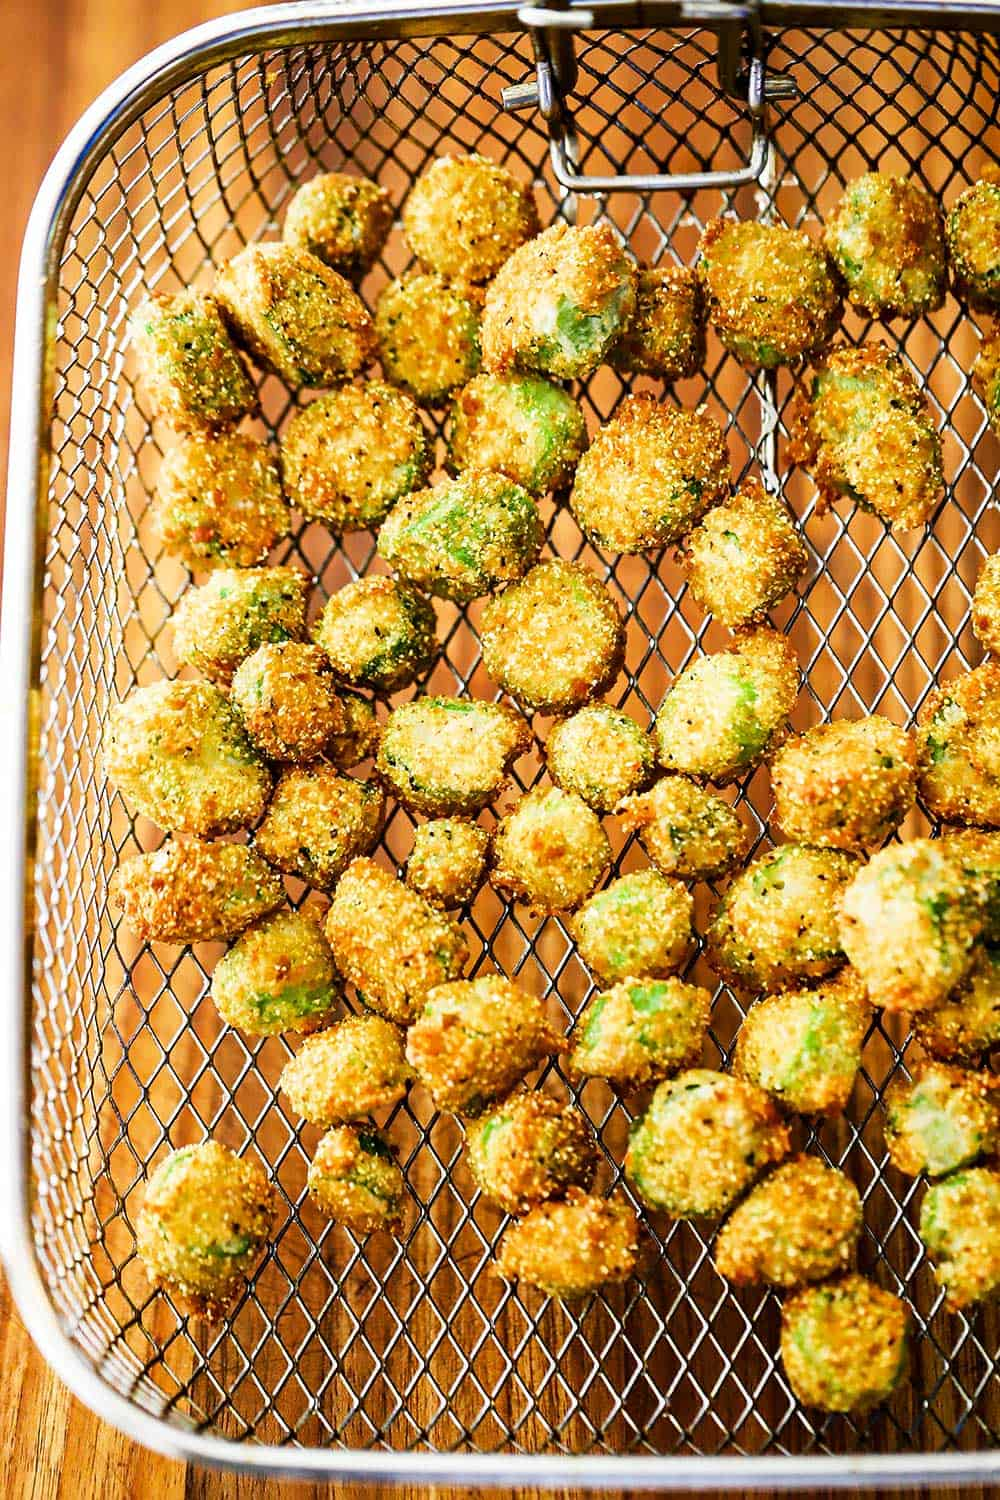 A fryer basket will with fried okra all over a wooden cutting board.